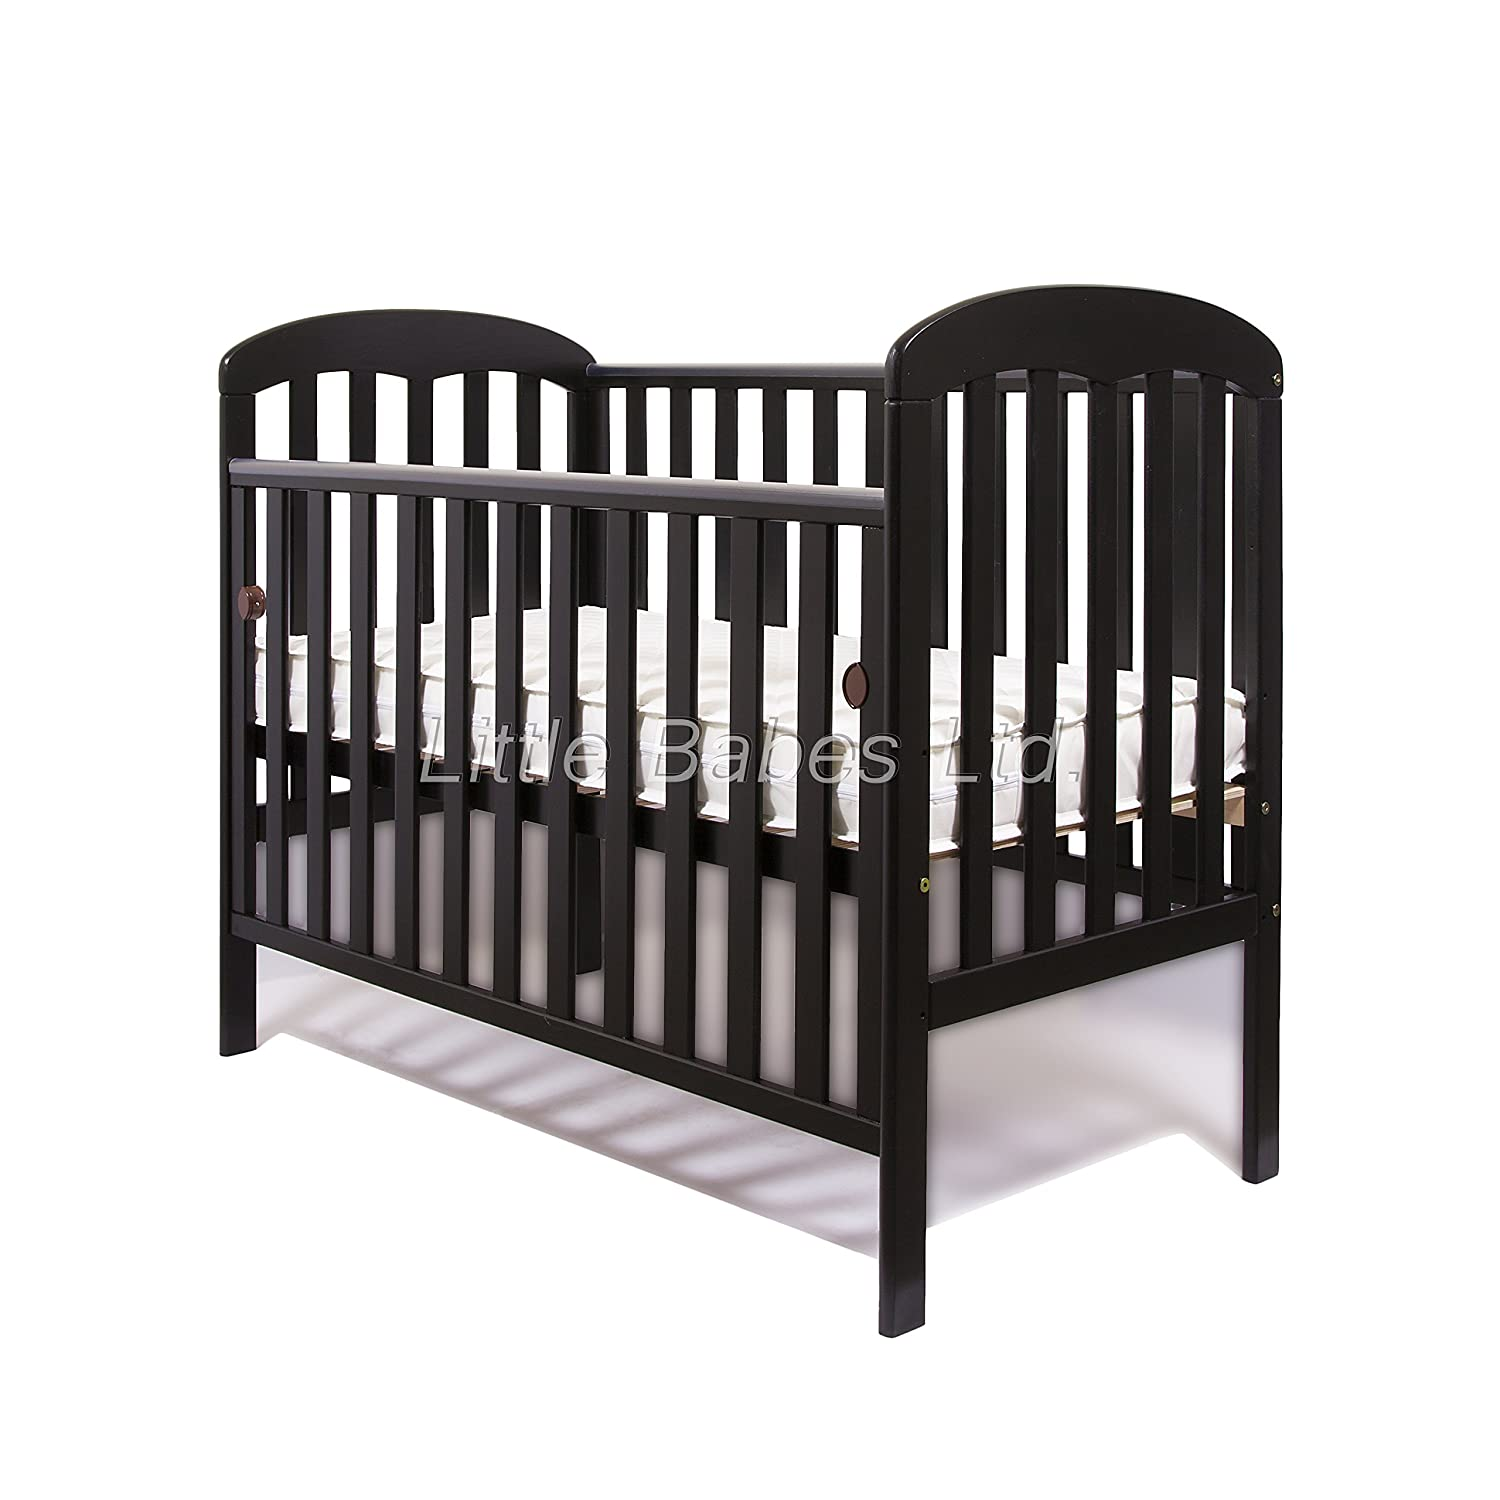 New Little Babes Ltd Mia Dropside Baby Cot Only (black) mia cot only